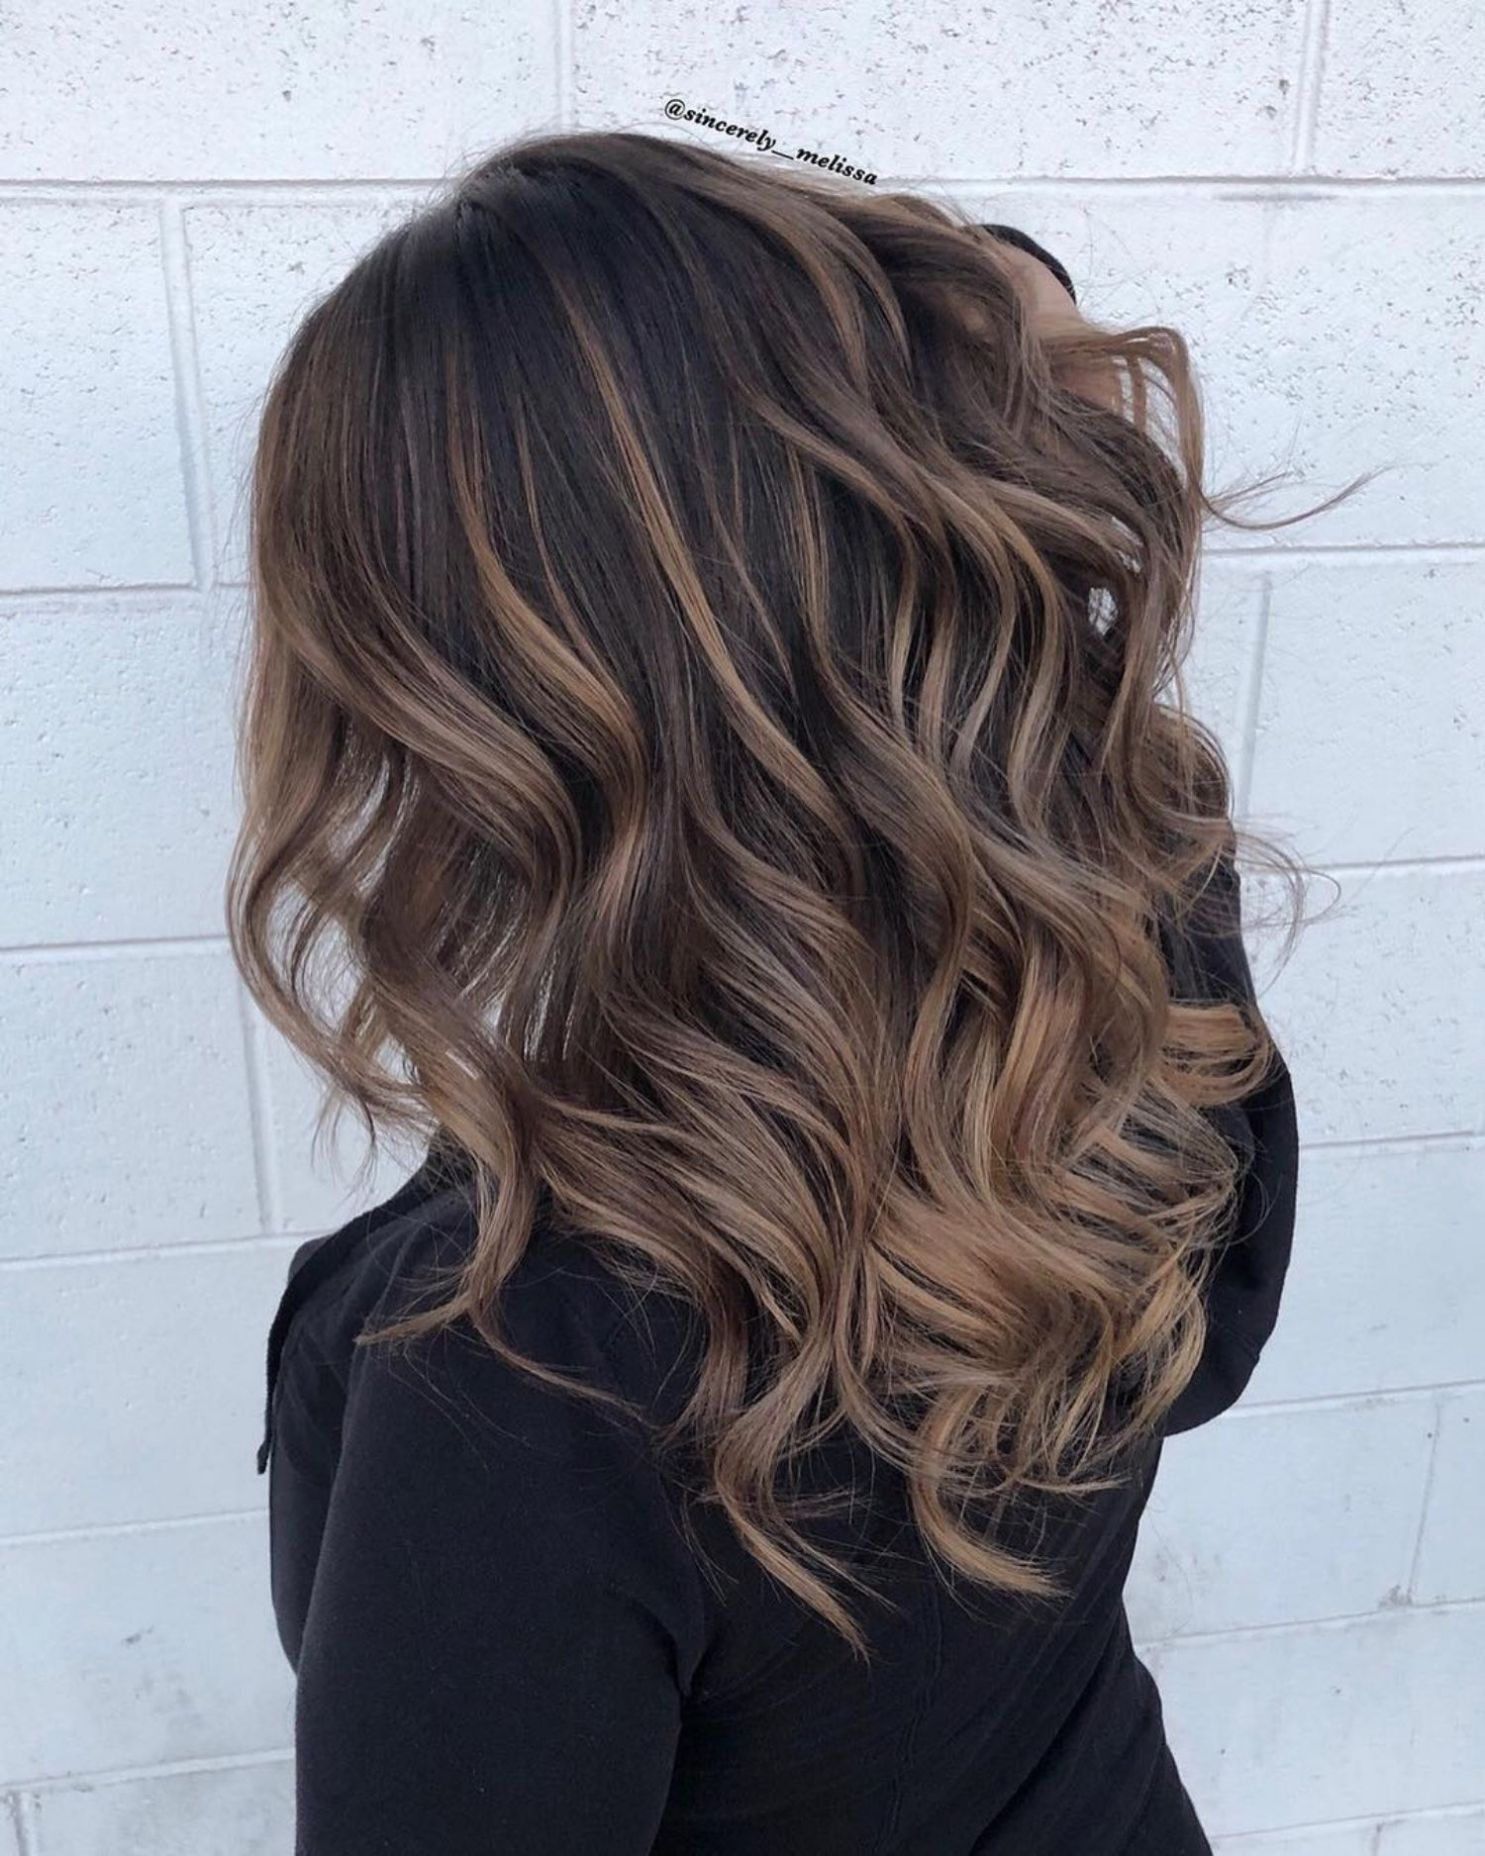 Brunette Hairstyle With Light Chocolate Highlights In 2020 Dark Hair With Highlights Brown Hair With Highlights Brown Hair Balayage